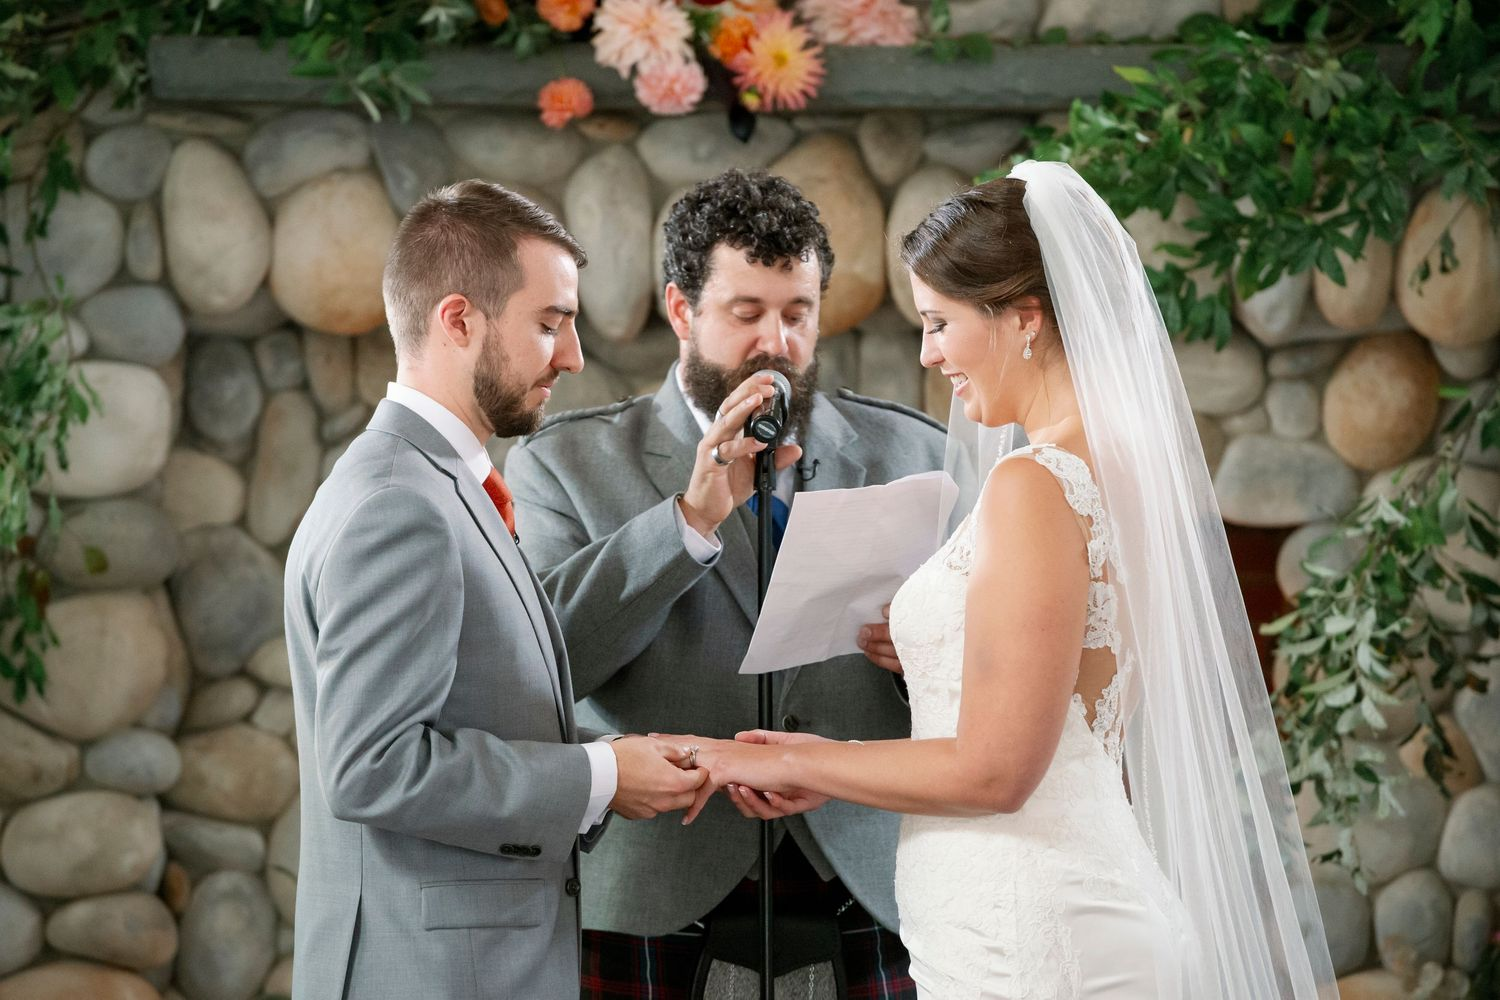 groom places ring on brides hand during ceremony